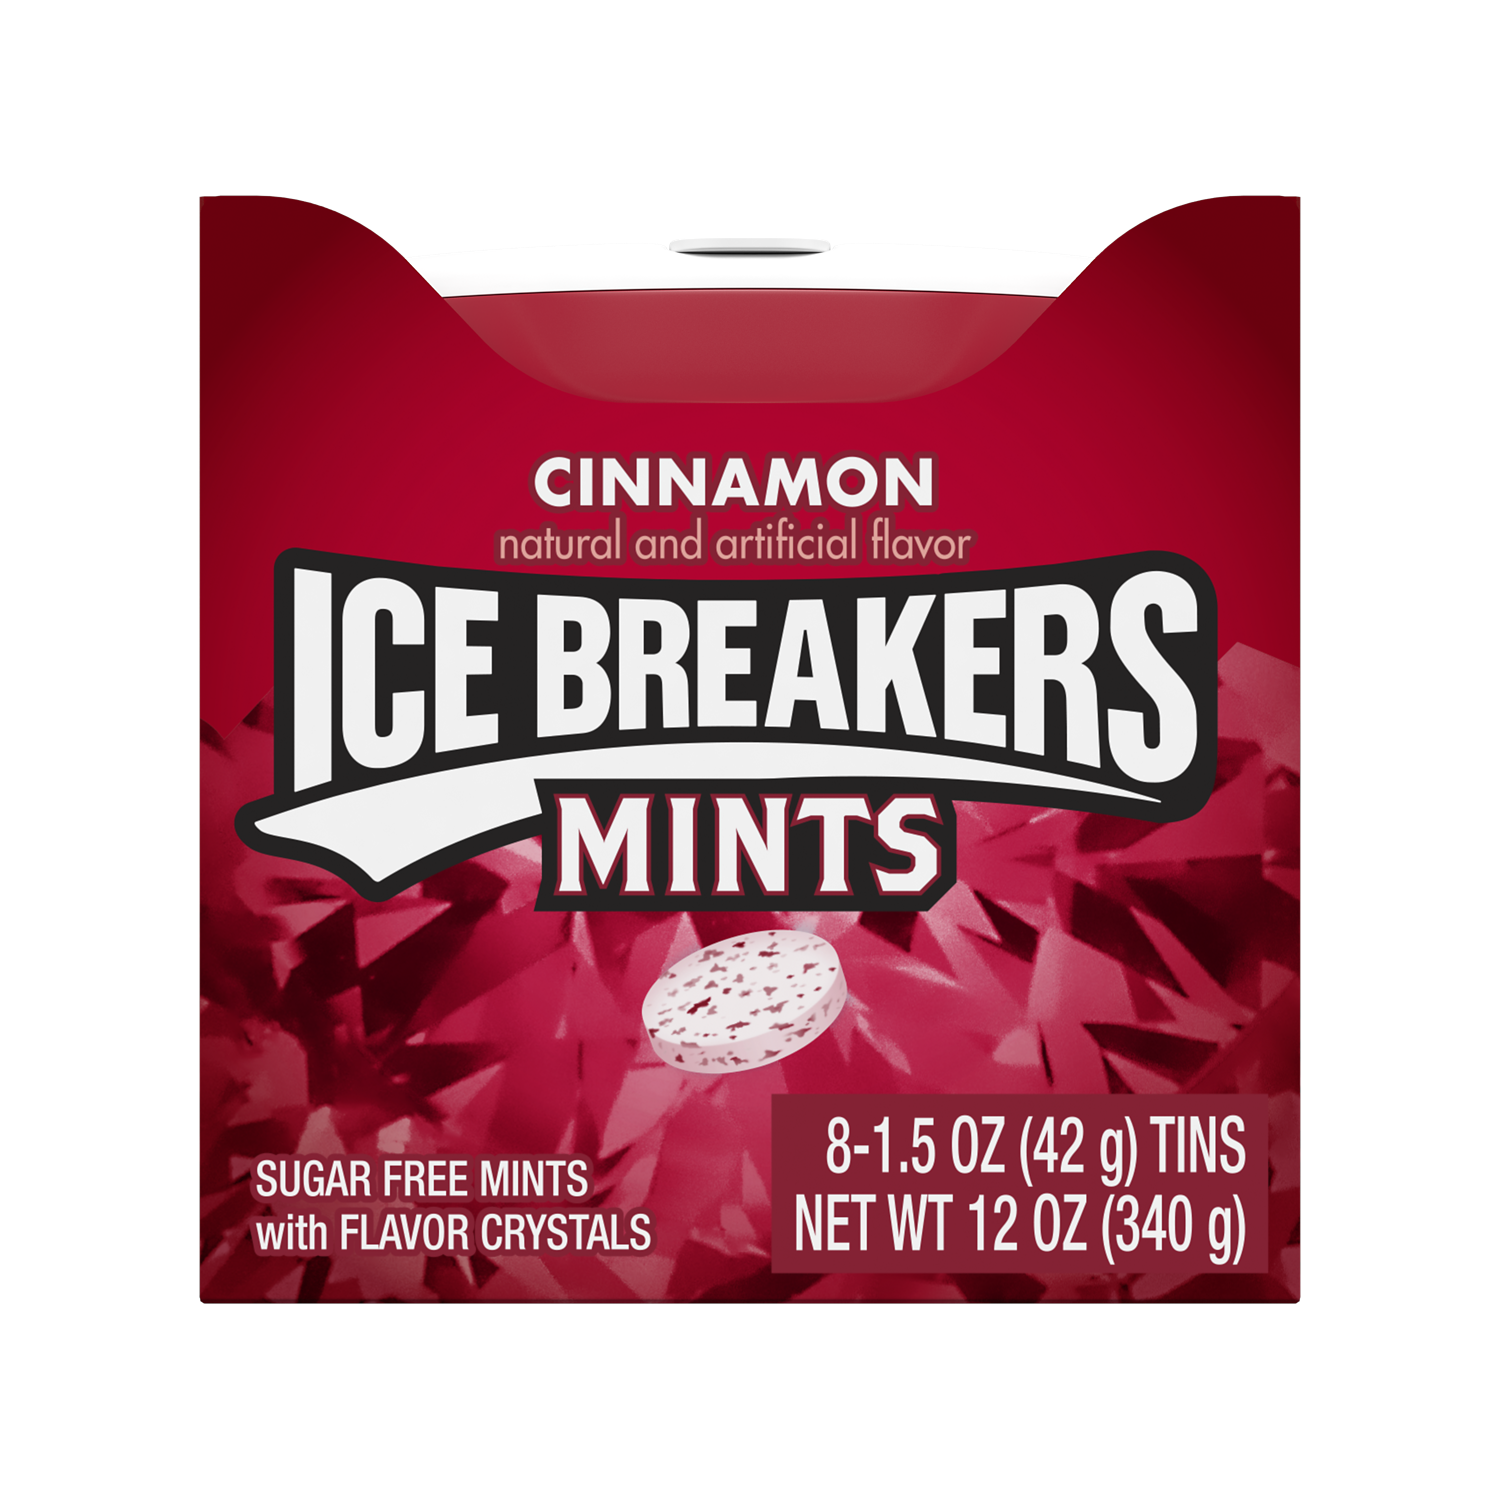 ICE BREAKERS Cinnamon Sugar Free Mints, 12 oz box, 8 pack - Front of Package